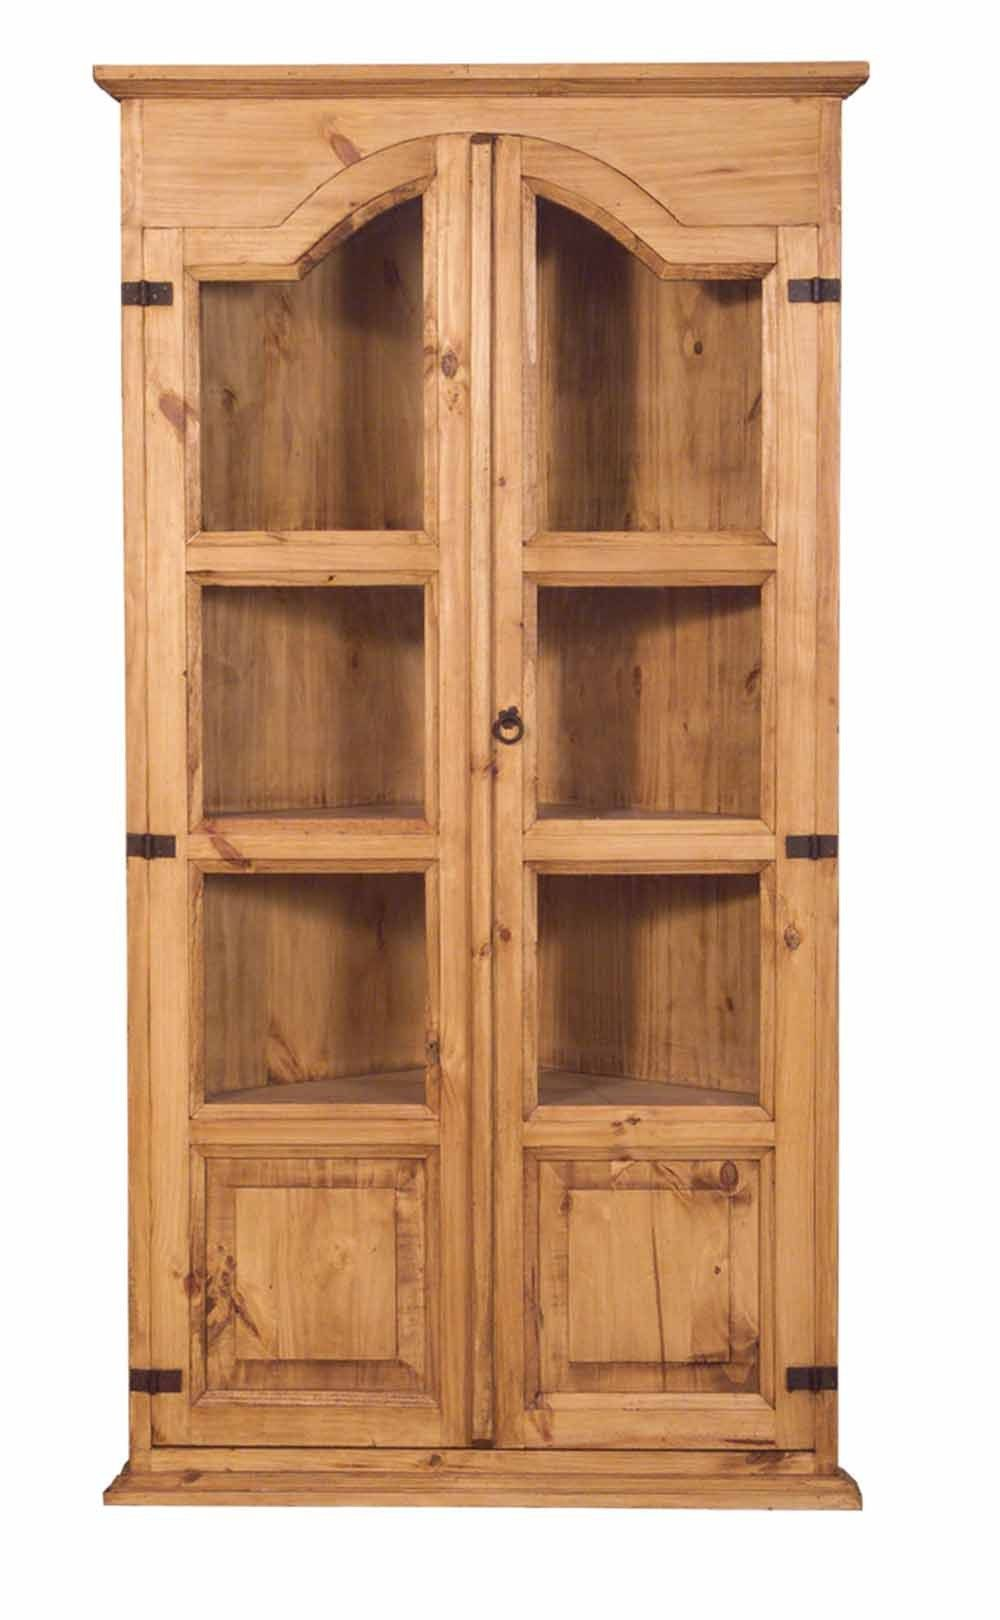 Rustic Pine Corner Cabinet Tres Amigos World Imports